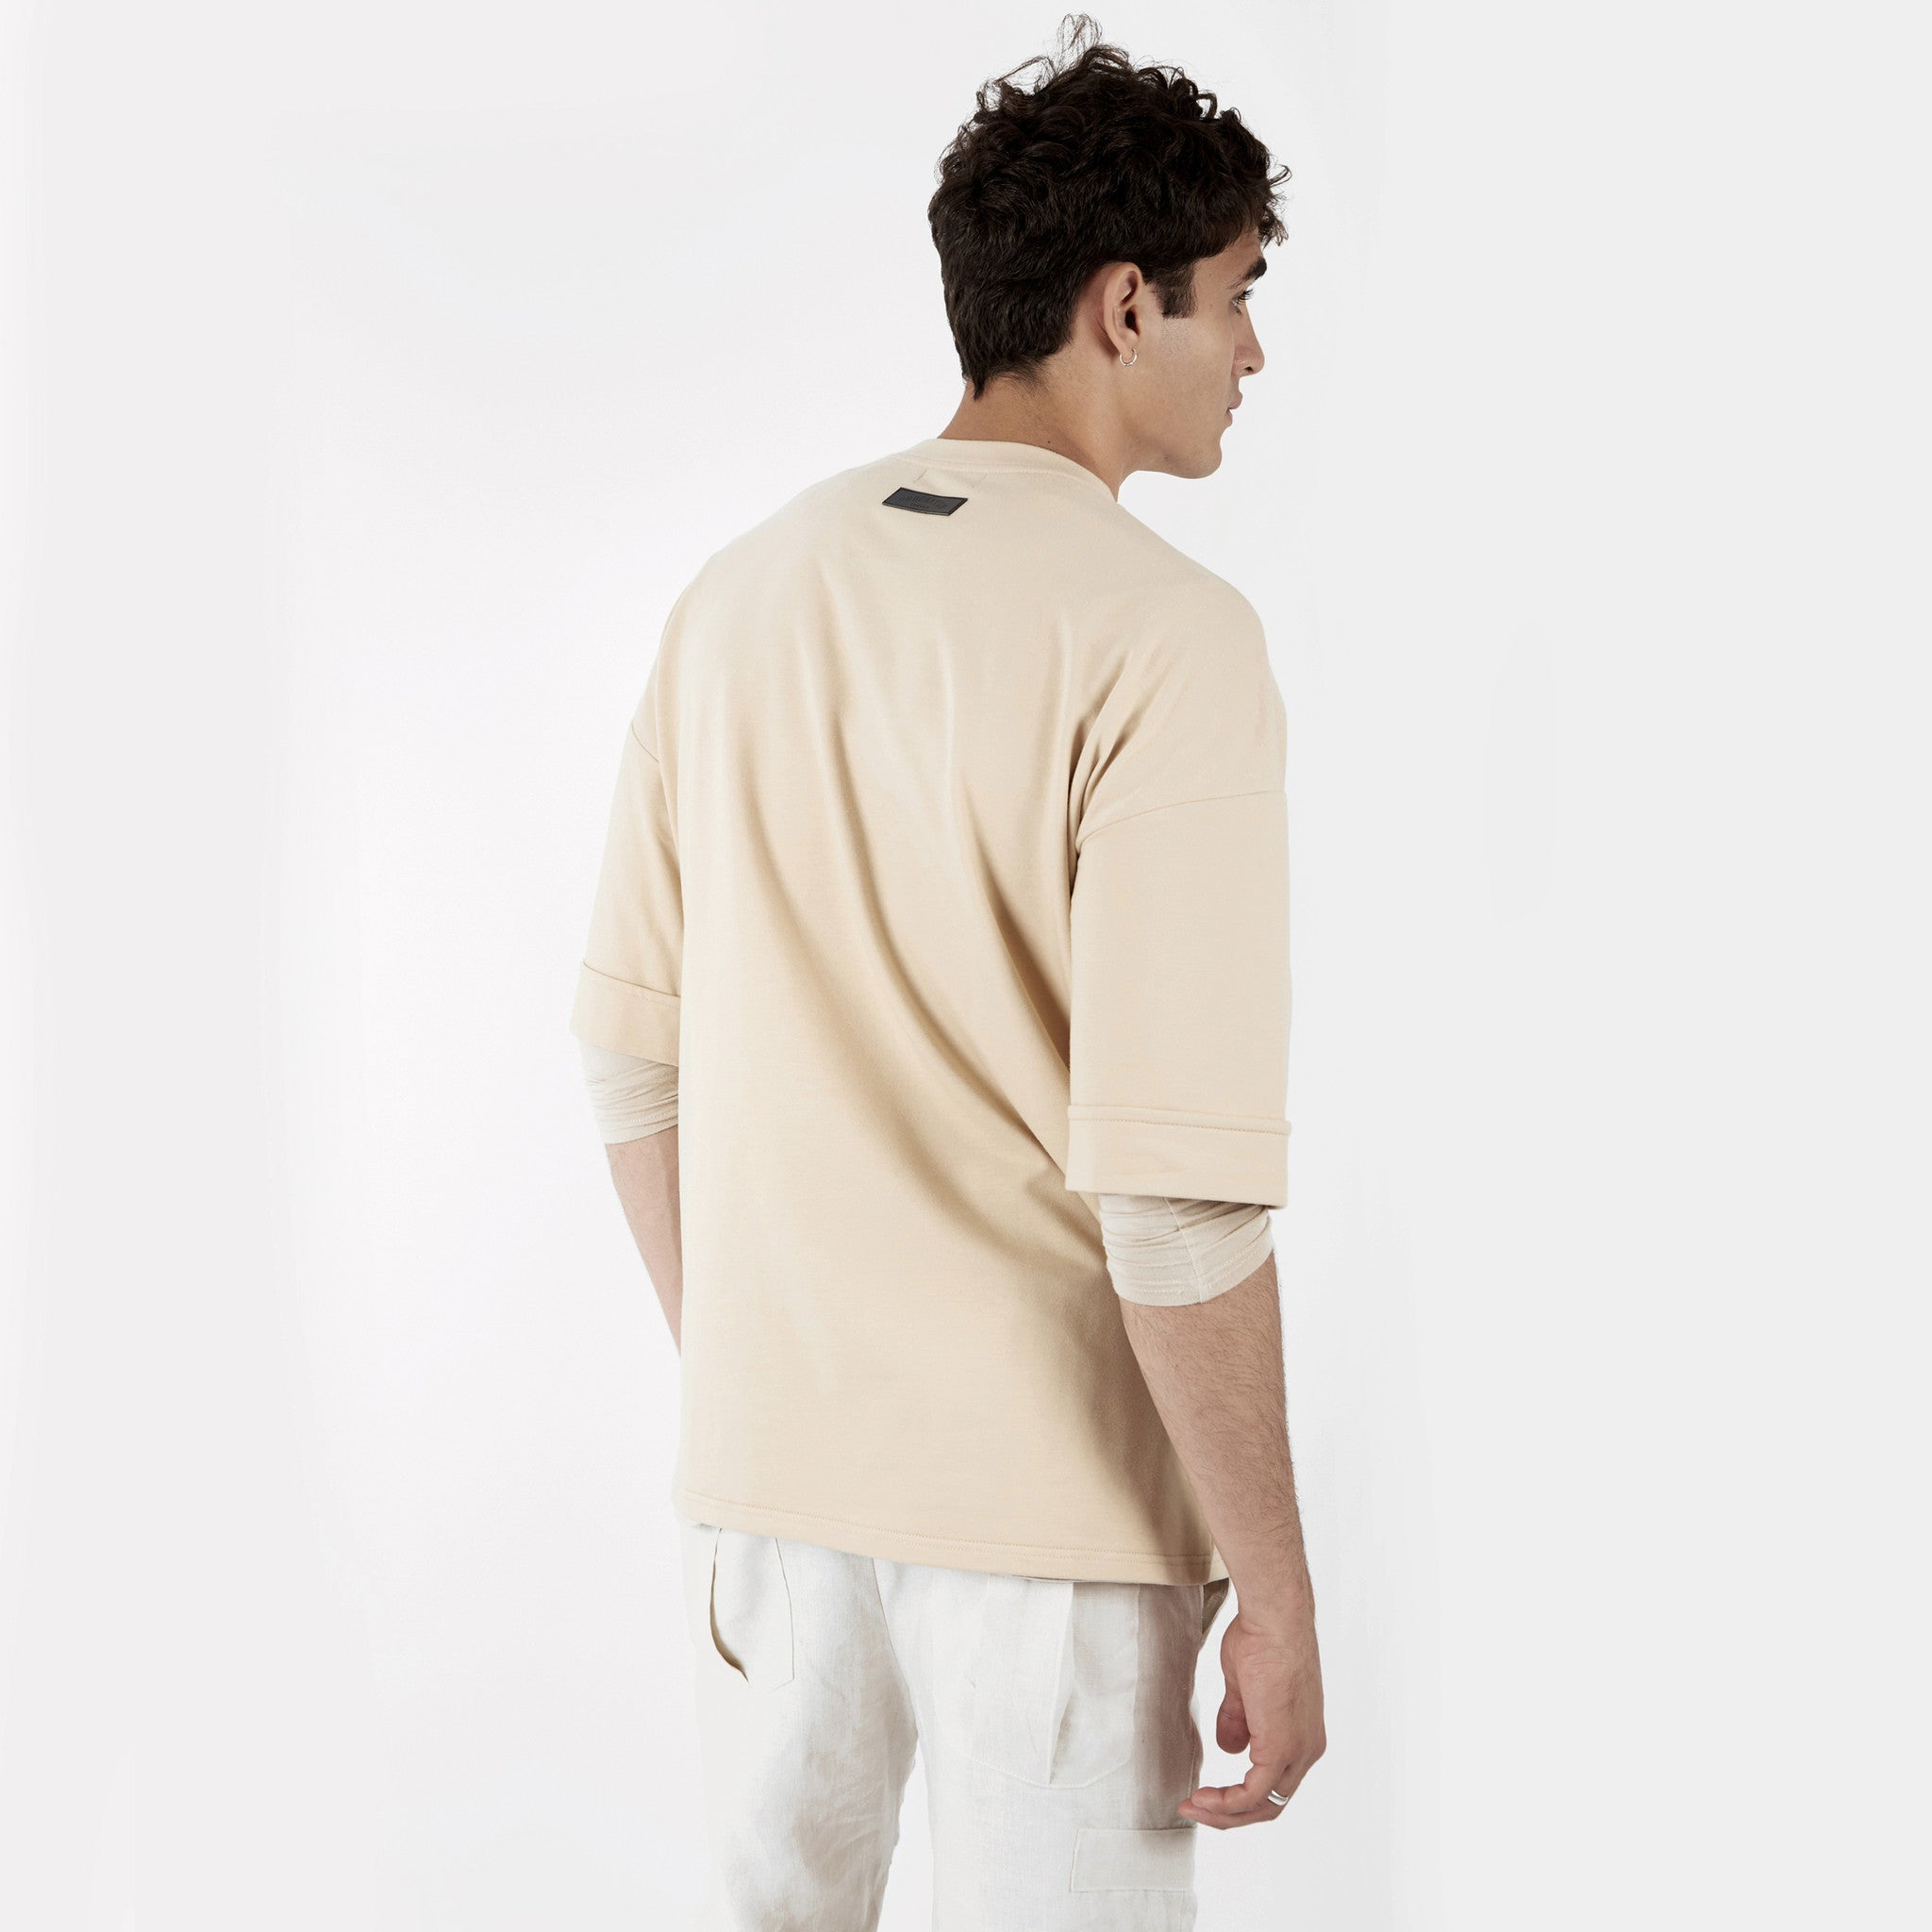 TS271 Oversized Tee - Beige - underated london - underatedco - 6